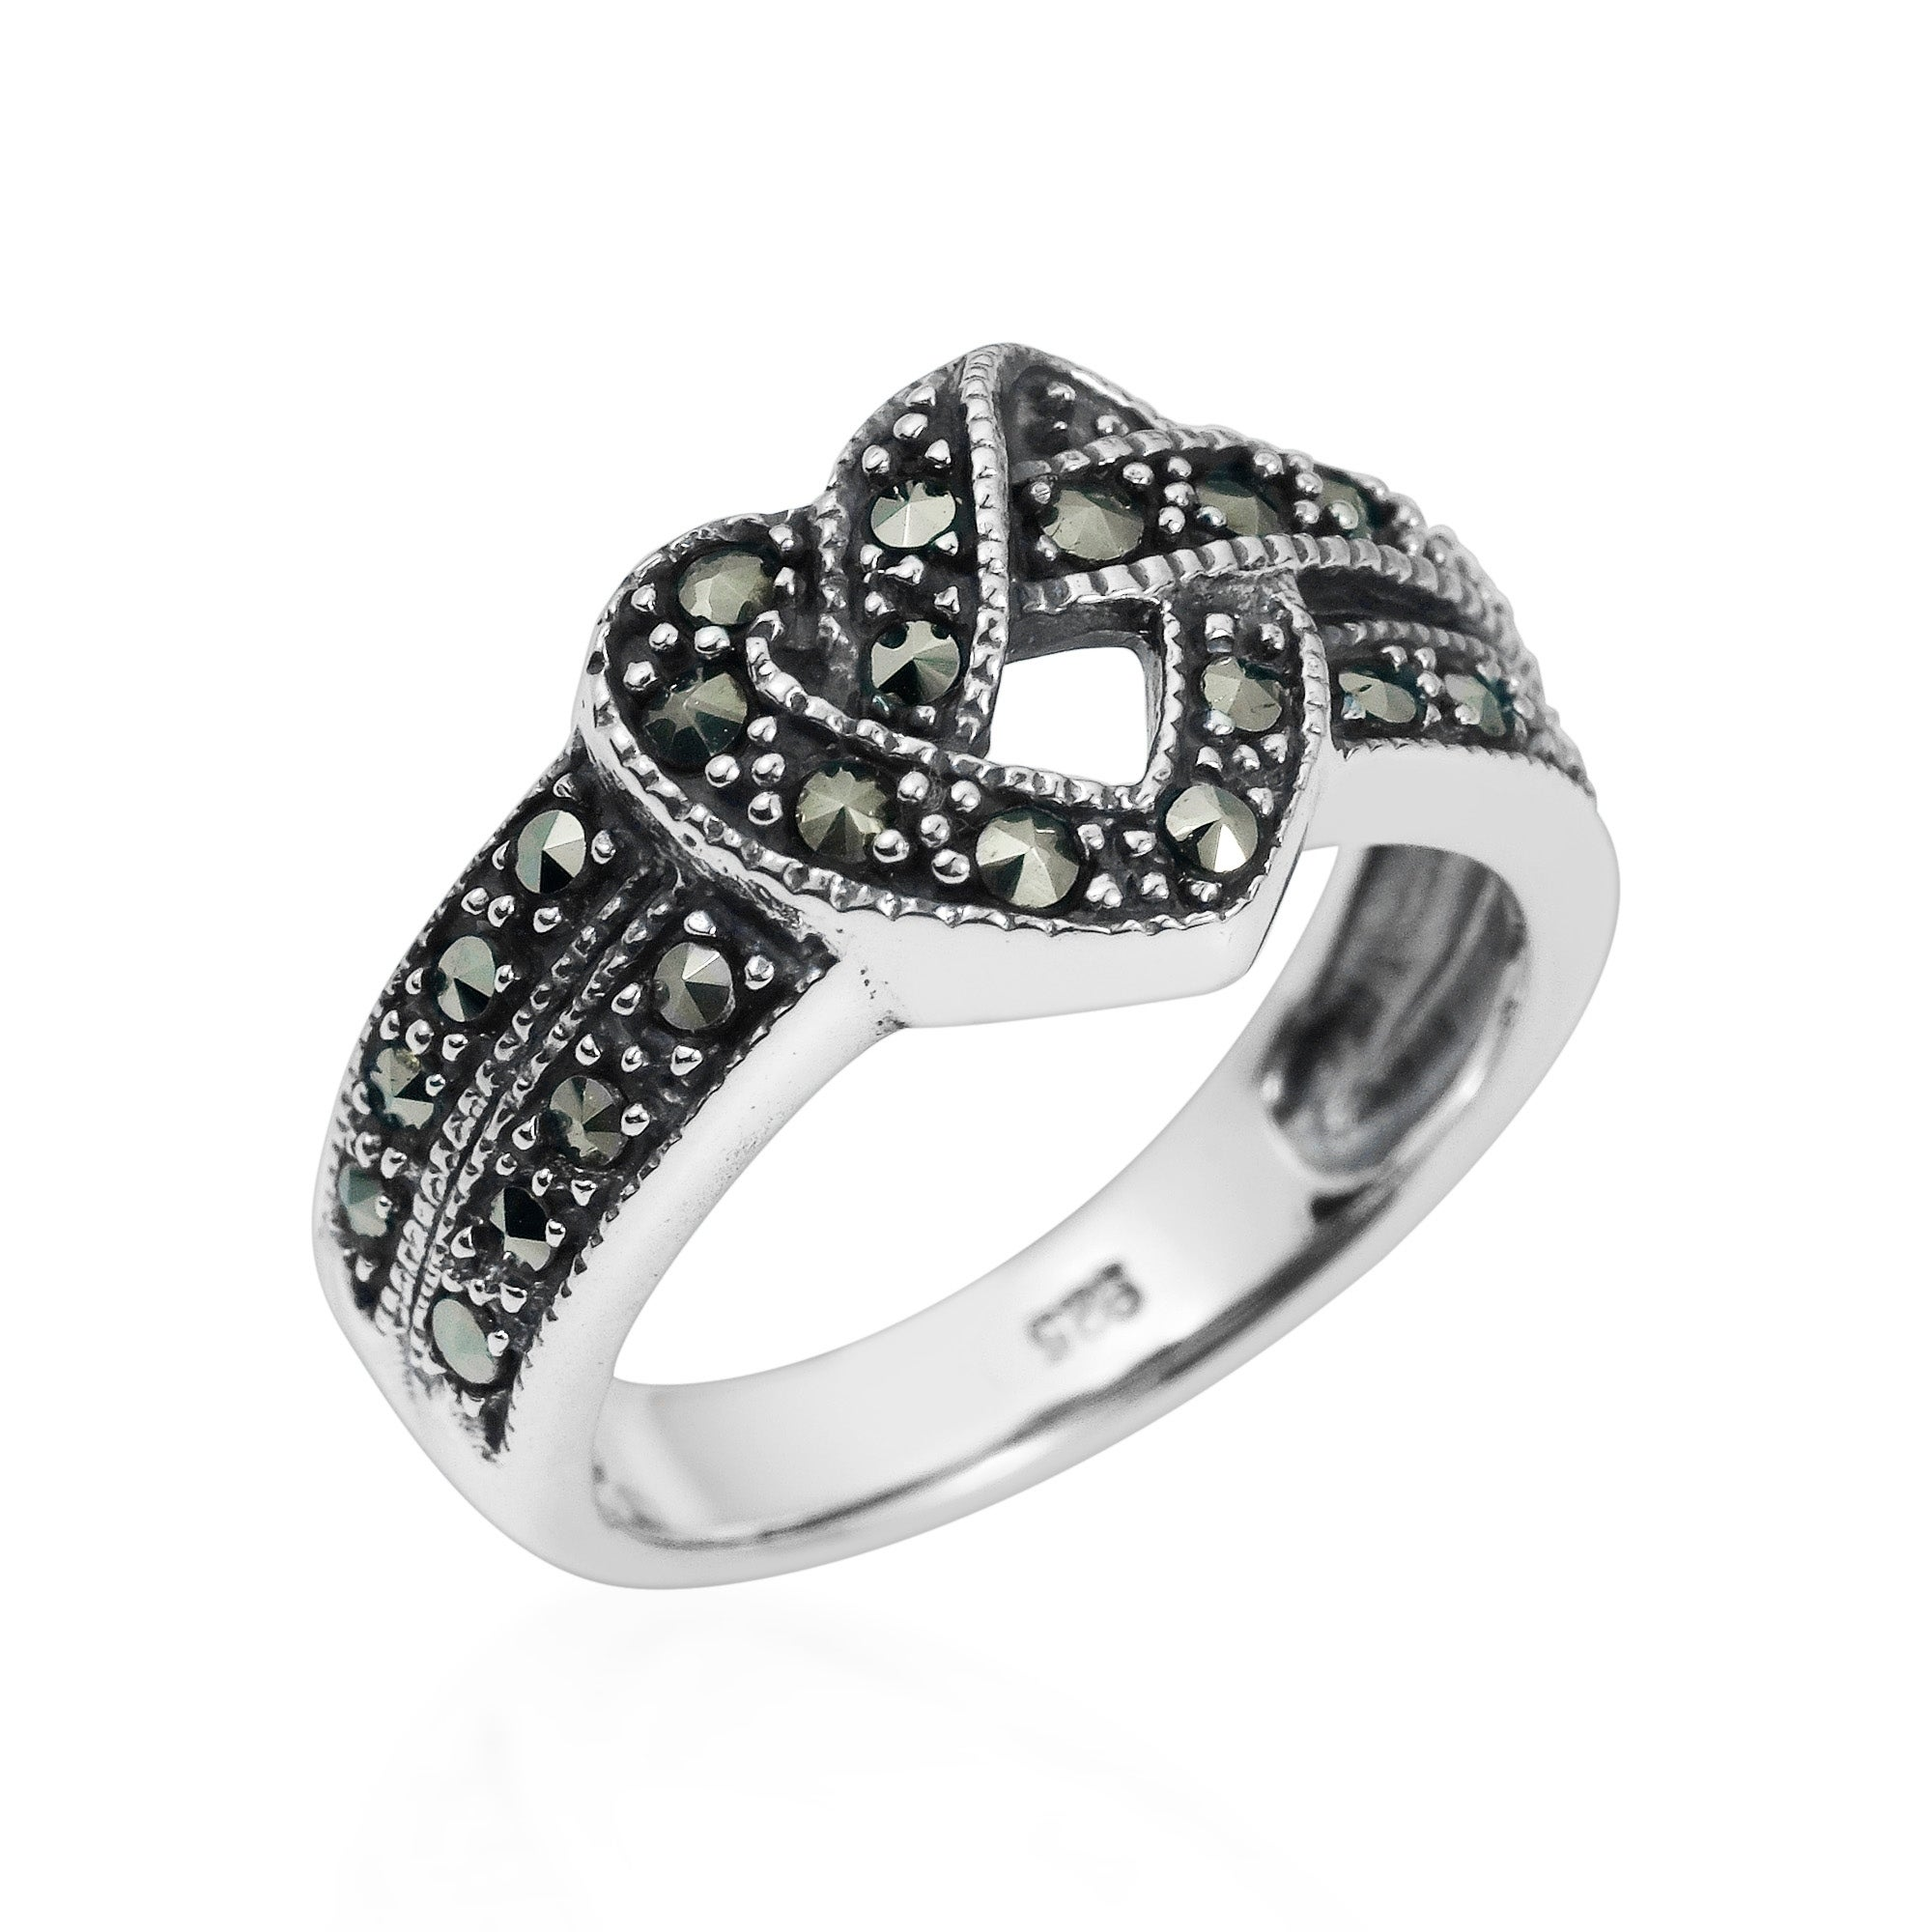 sterling a gemstones design star dazzles gemstone with fill swirl mr the products ring details fashionable aeravida this captivating piece front in for of rings style marcasite silver cute grace